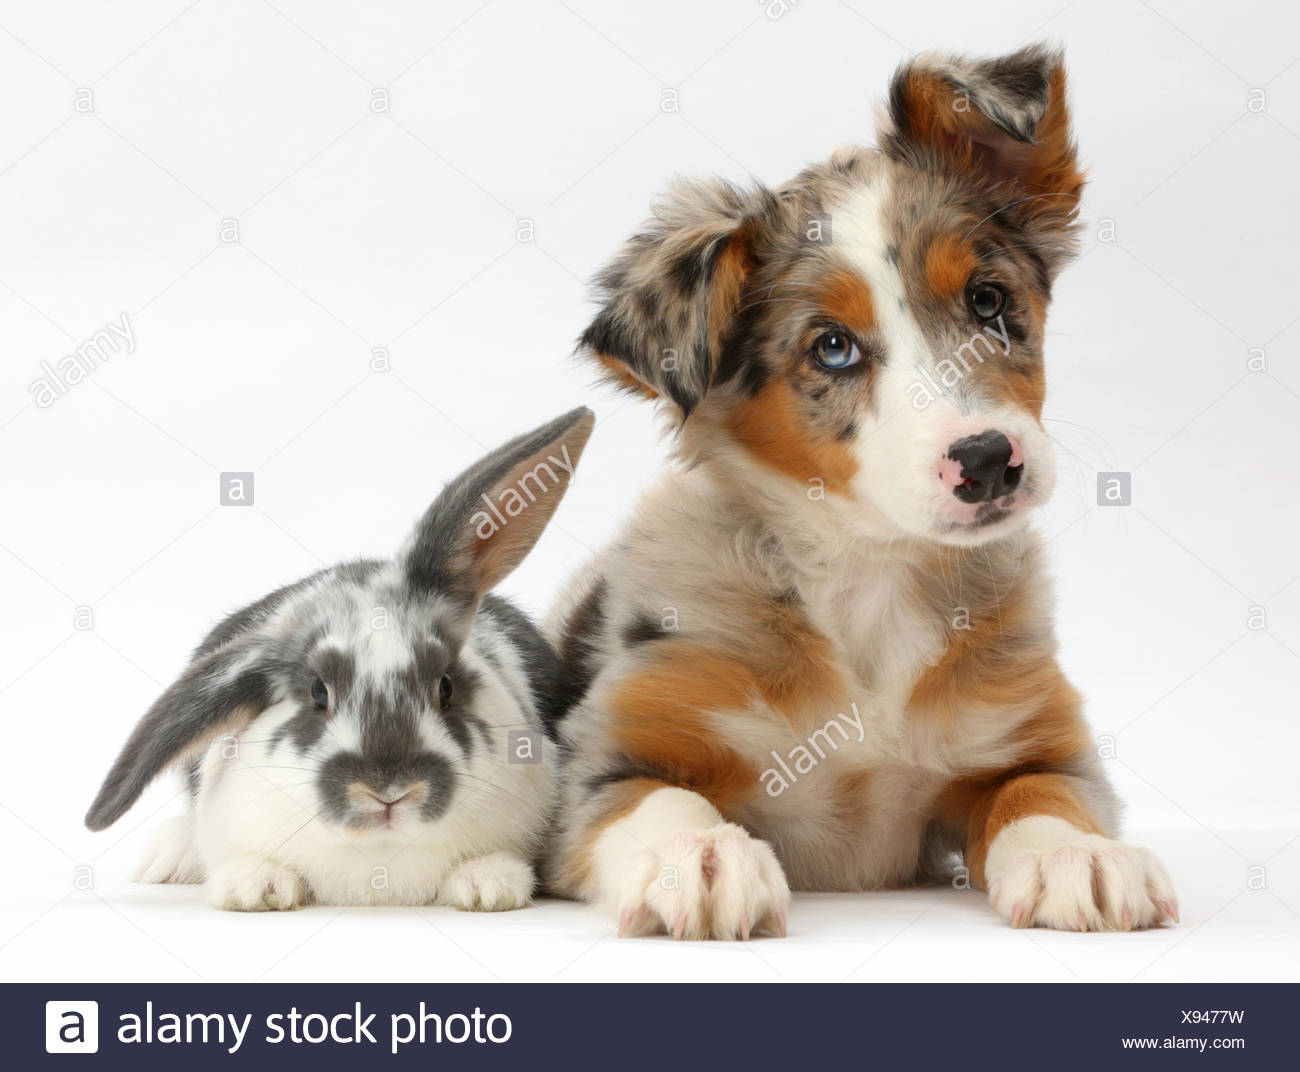 Tricolour merle Collie puppy, Indie, age 10 weeks, with blue-and-white rabbit. - Stock Image